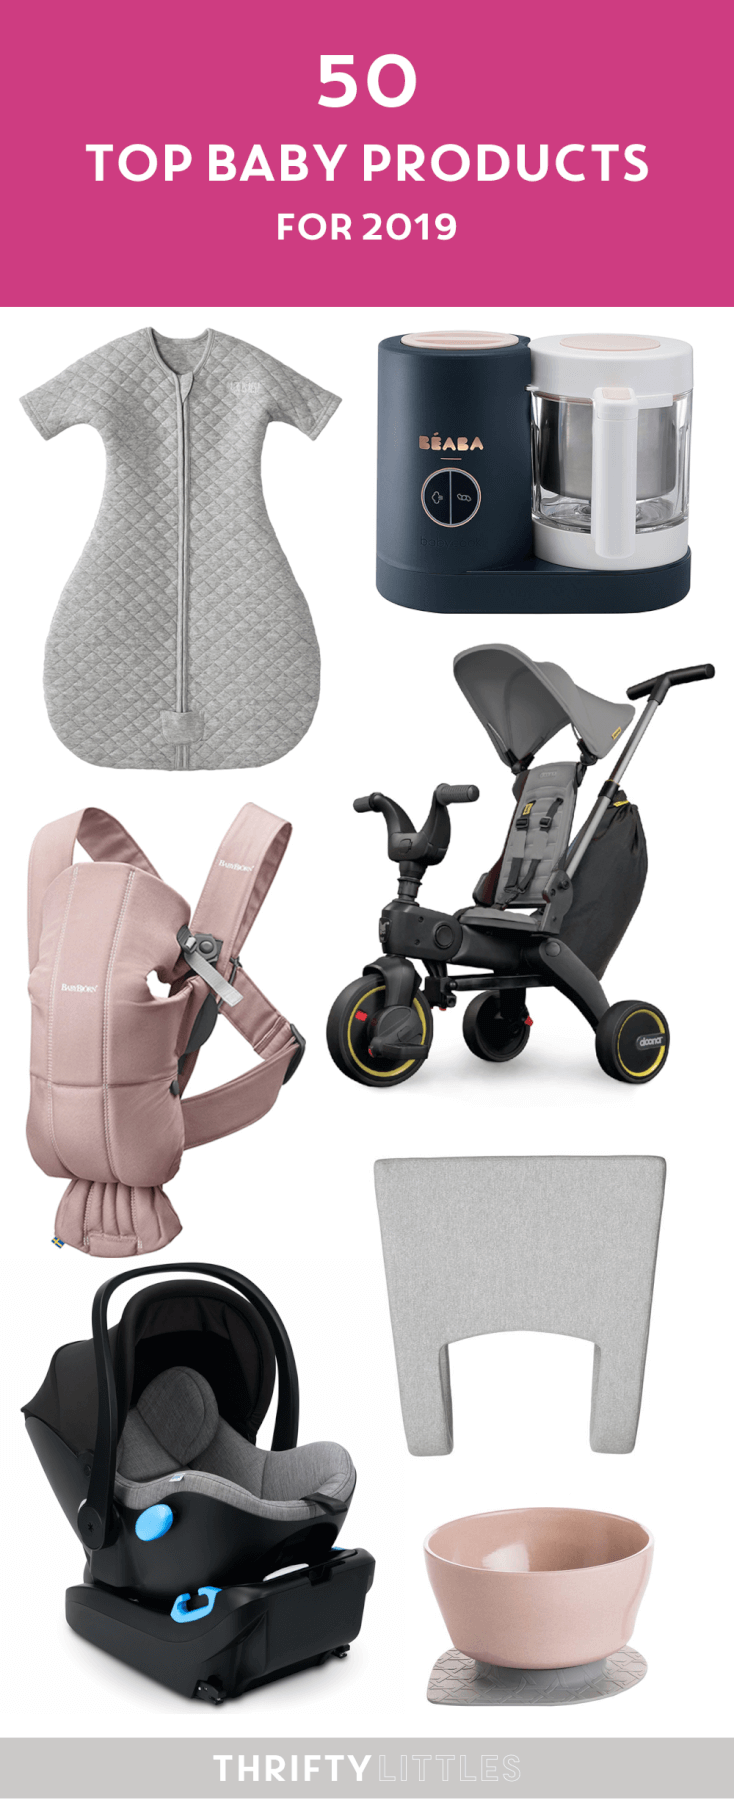 Best Baby Products 2019 The Top 50 Baby Products for 2019 (from the ABC Kids Expo